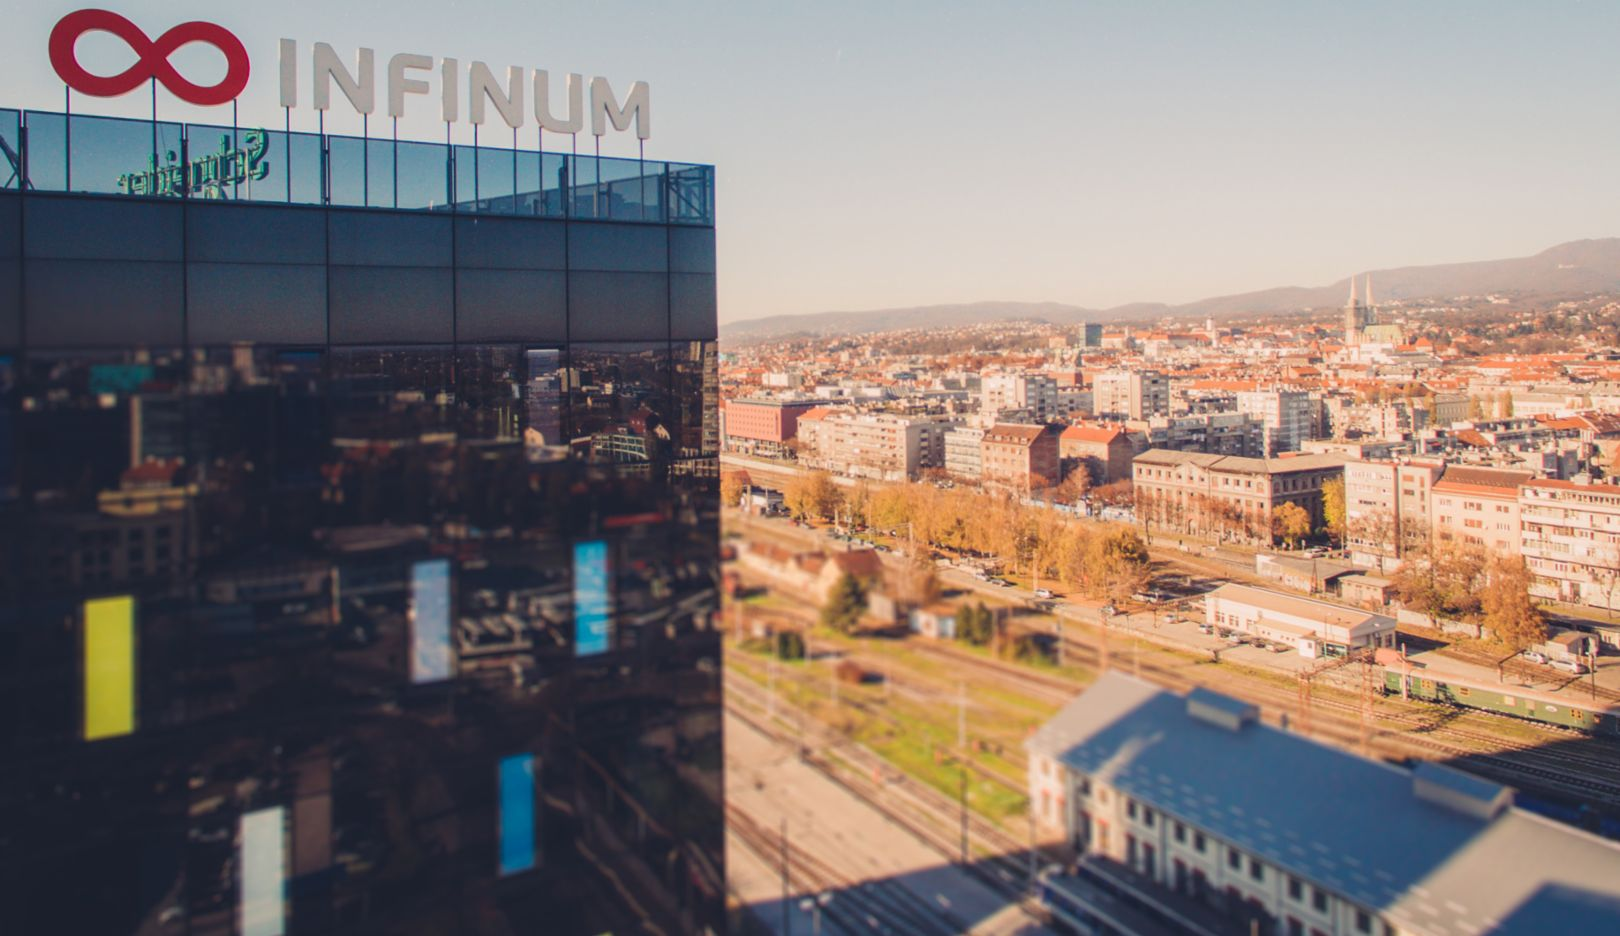 Croatian tech company Infinum, 2020, Porsche Digital GmbH